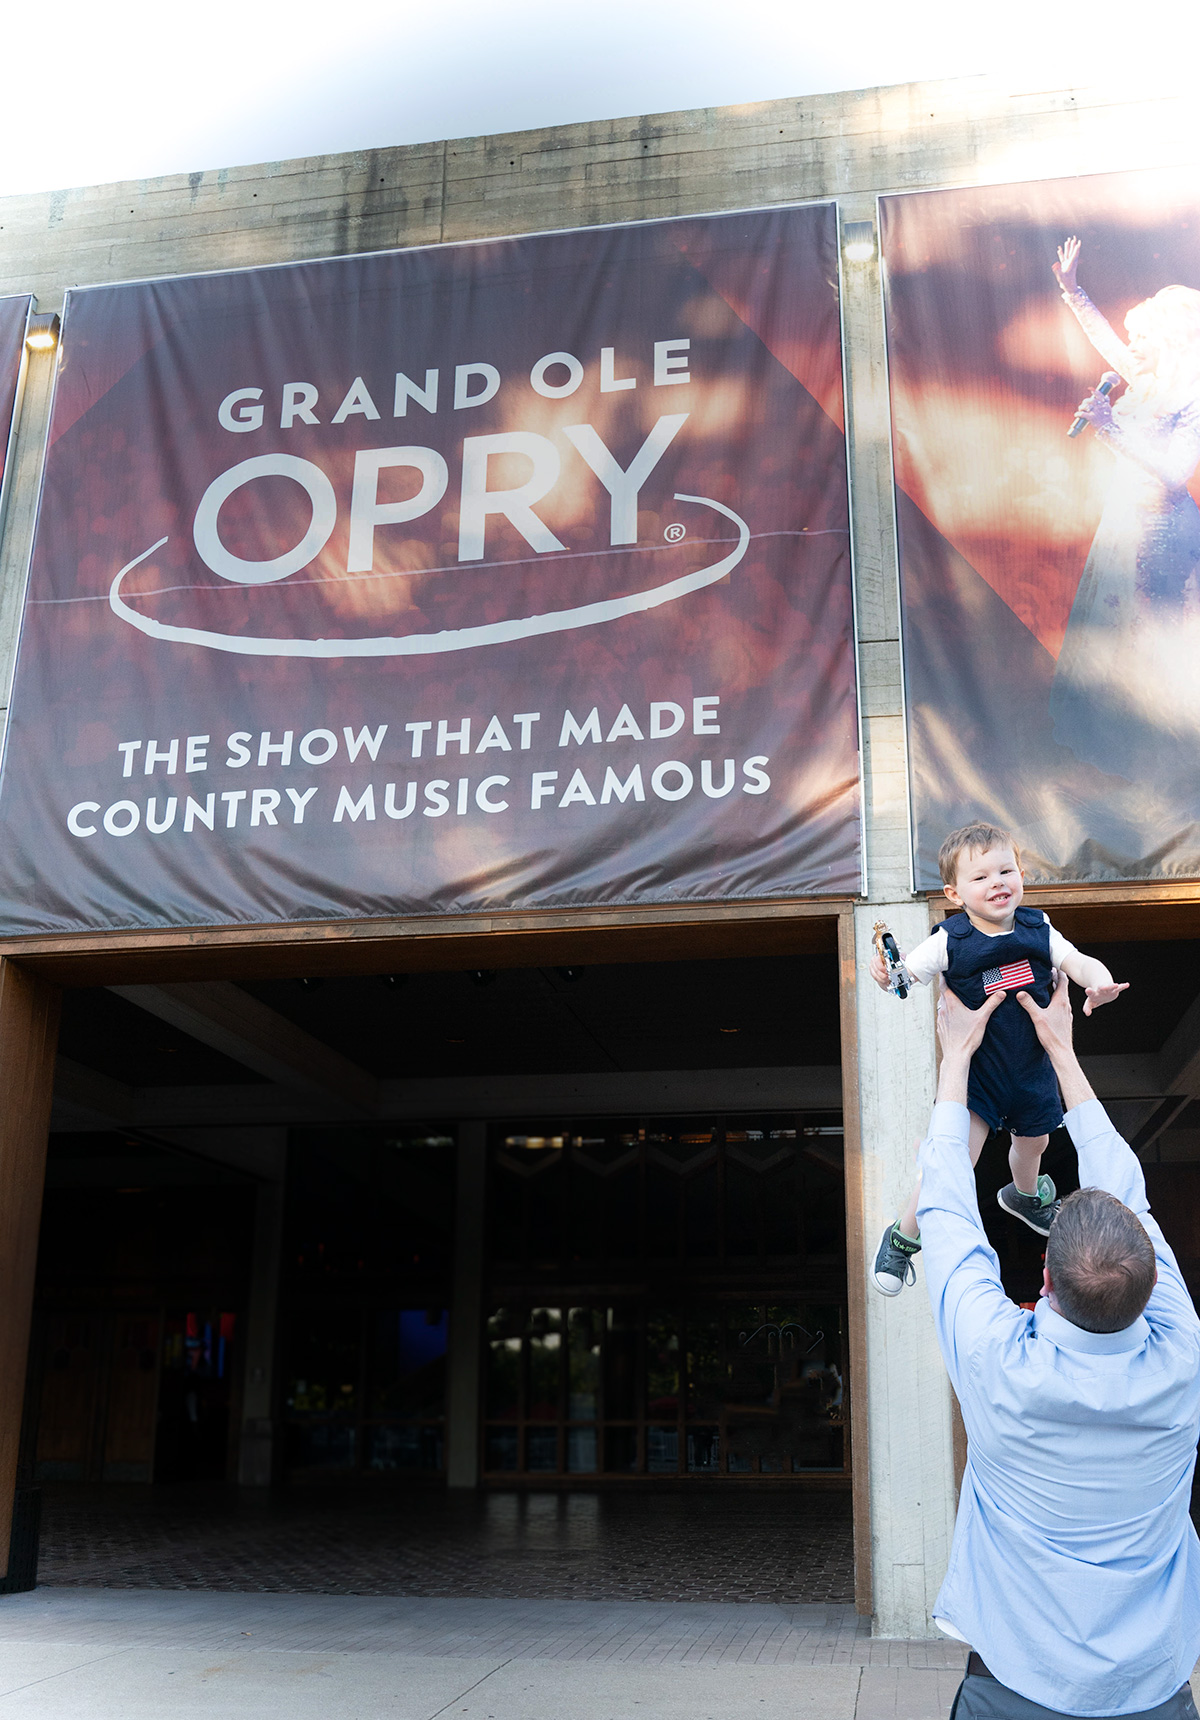 Grand-Ole-Opry-Nashville-TN